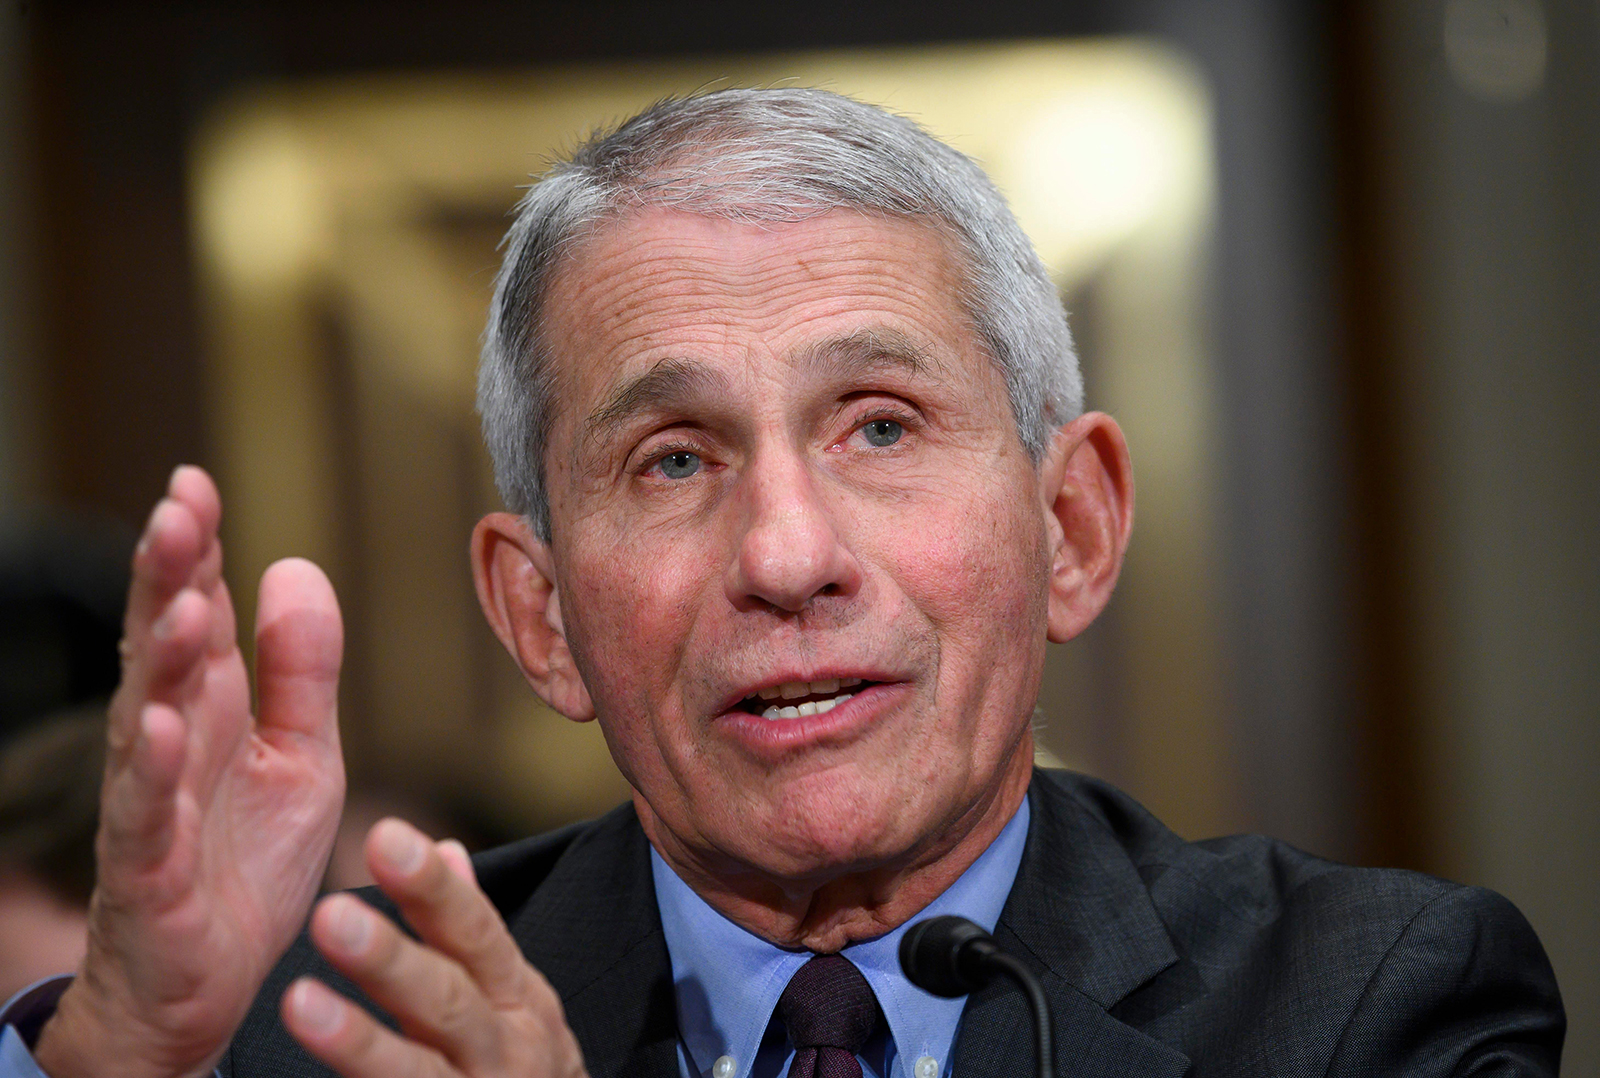 Dr. Anthony Fauci, director of the National Institute of Allergy and Infectious Diseases, t​estifies before the US Senate Committee in Washington, on March 3.